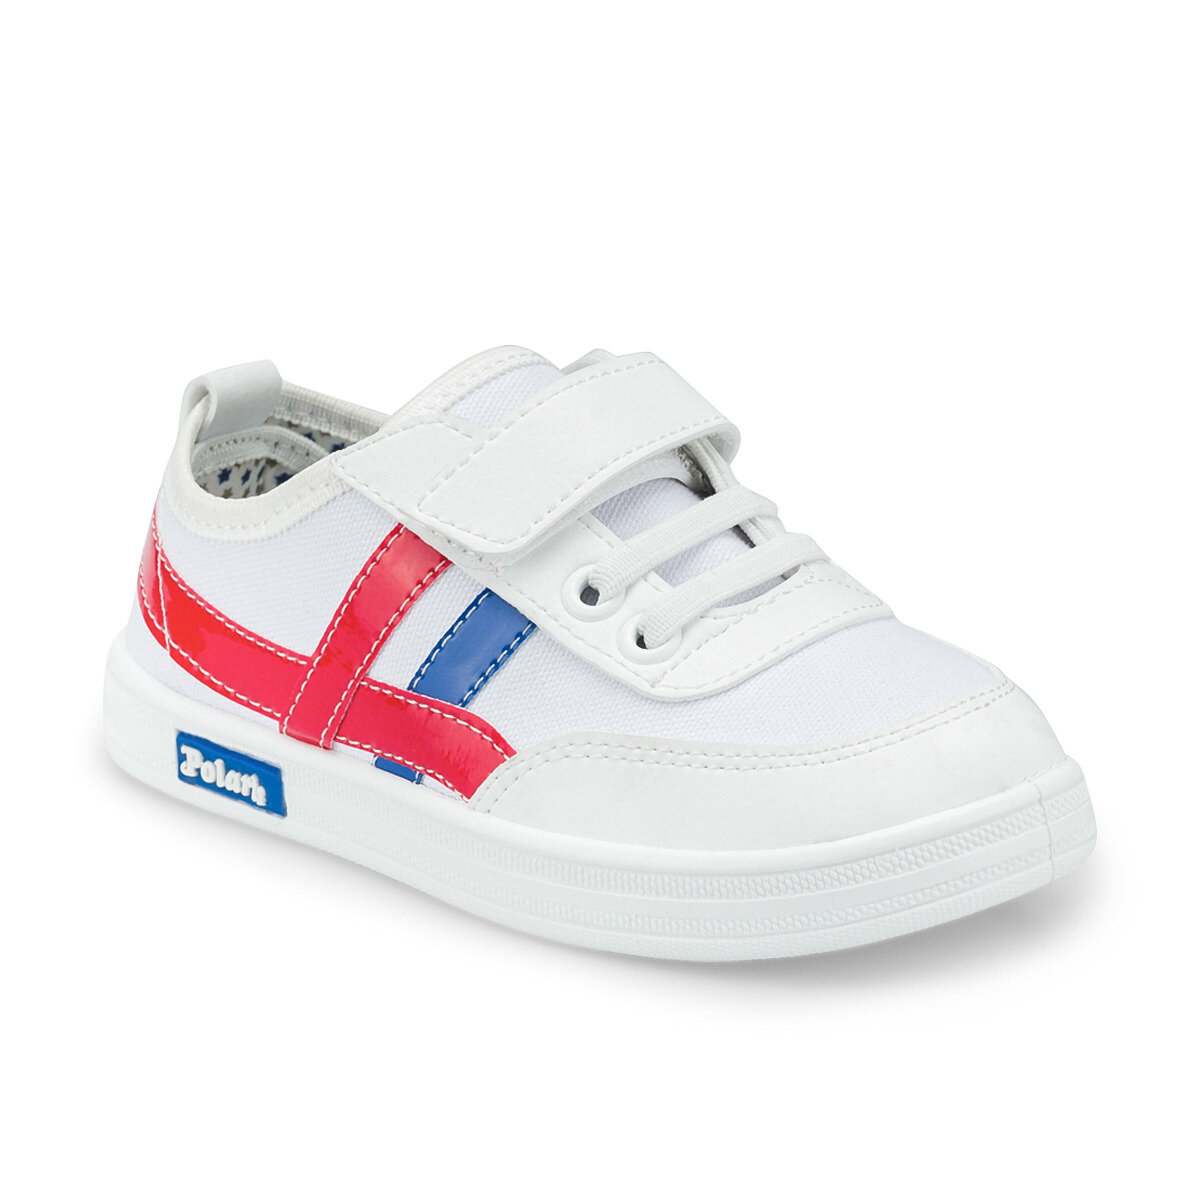 FLO 512215.P White Male Child Sneaker Shoes Polaris